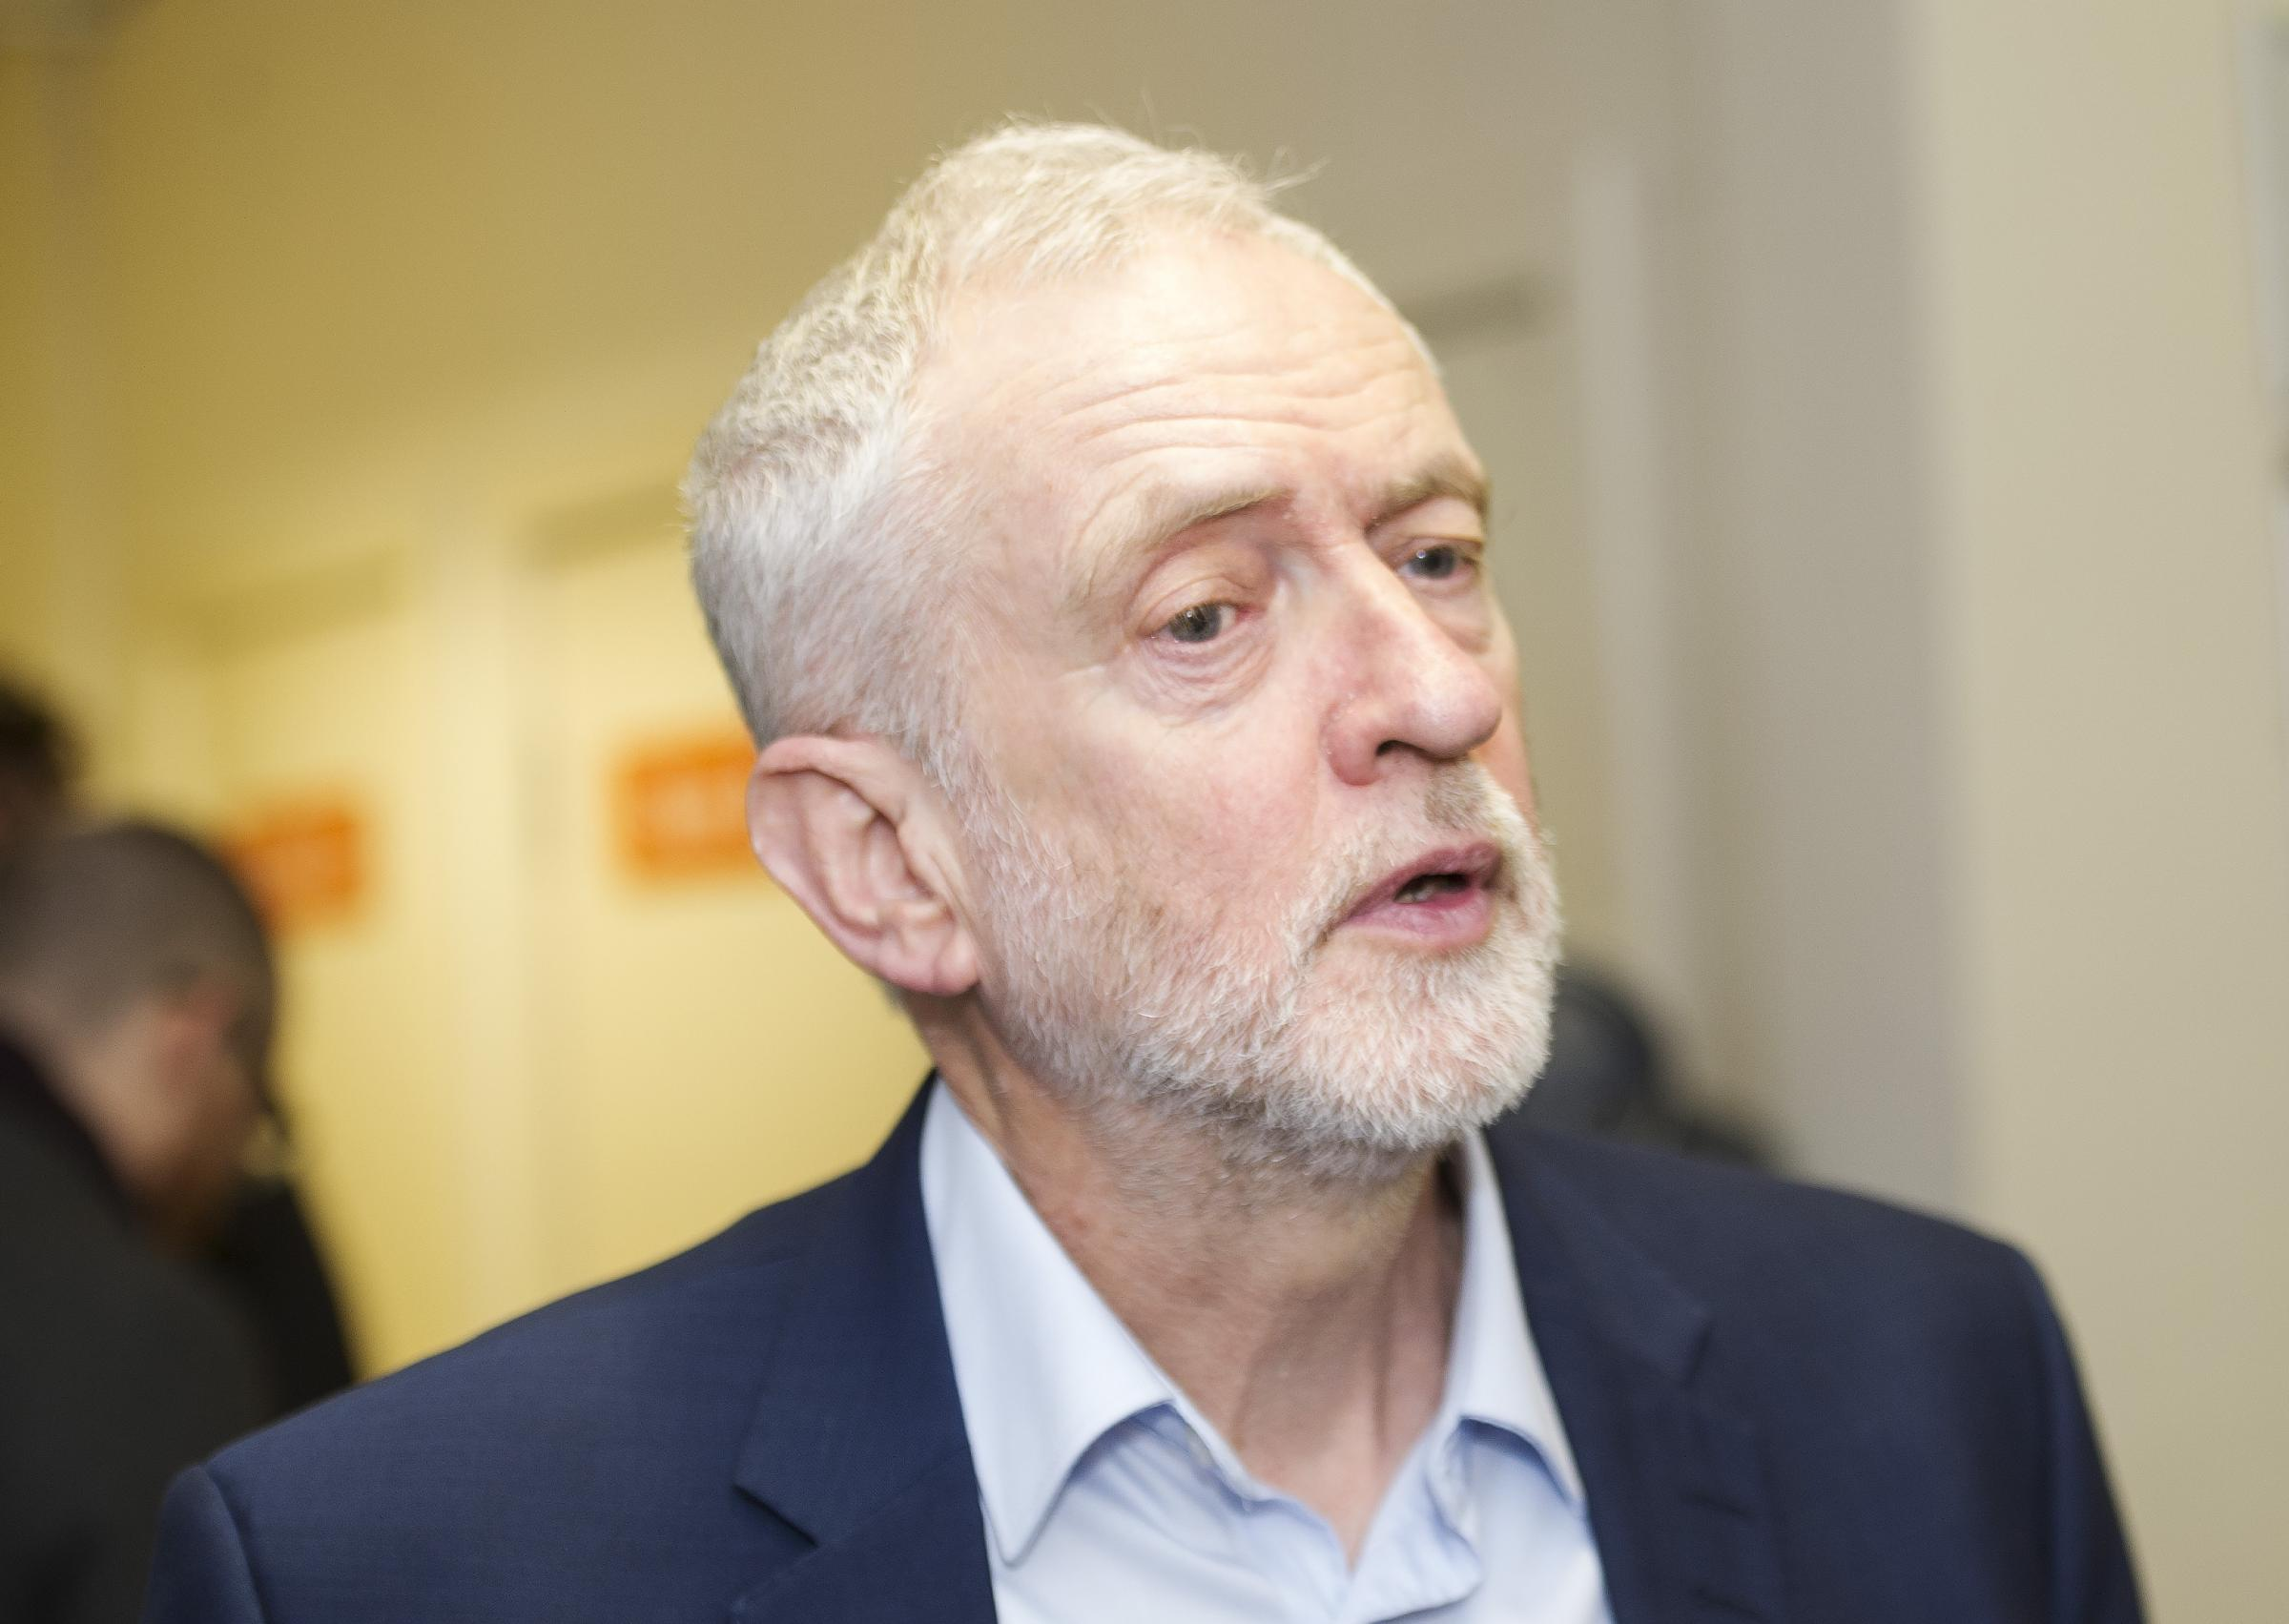 UK Jewish newspapers say Labour leader Corbyn poses 'existential threat'